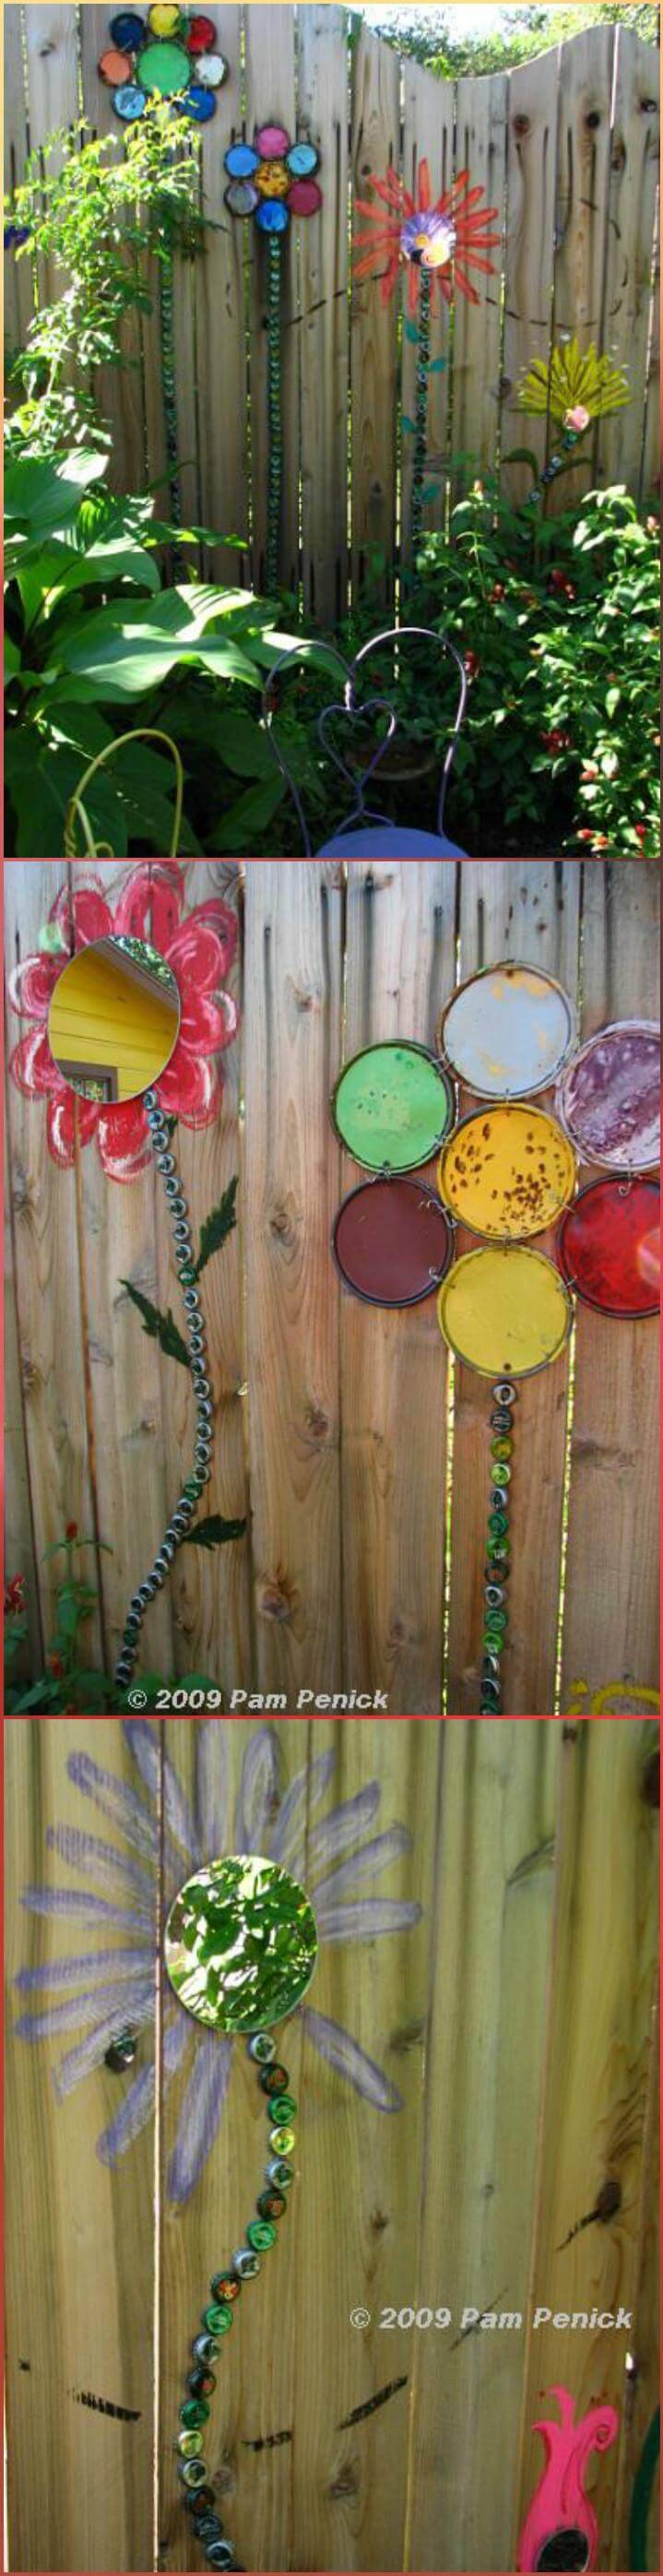 25 diy fence decorating ideas projects page 2 of 5 for Homemade garden decor crafts